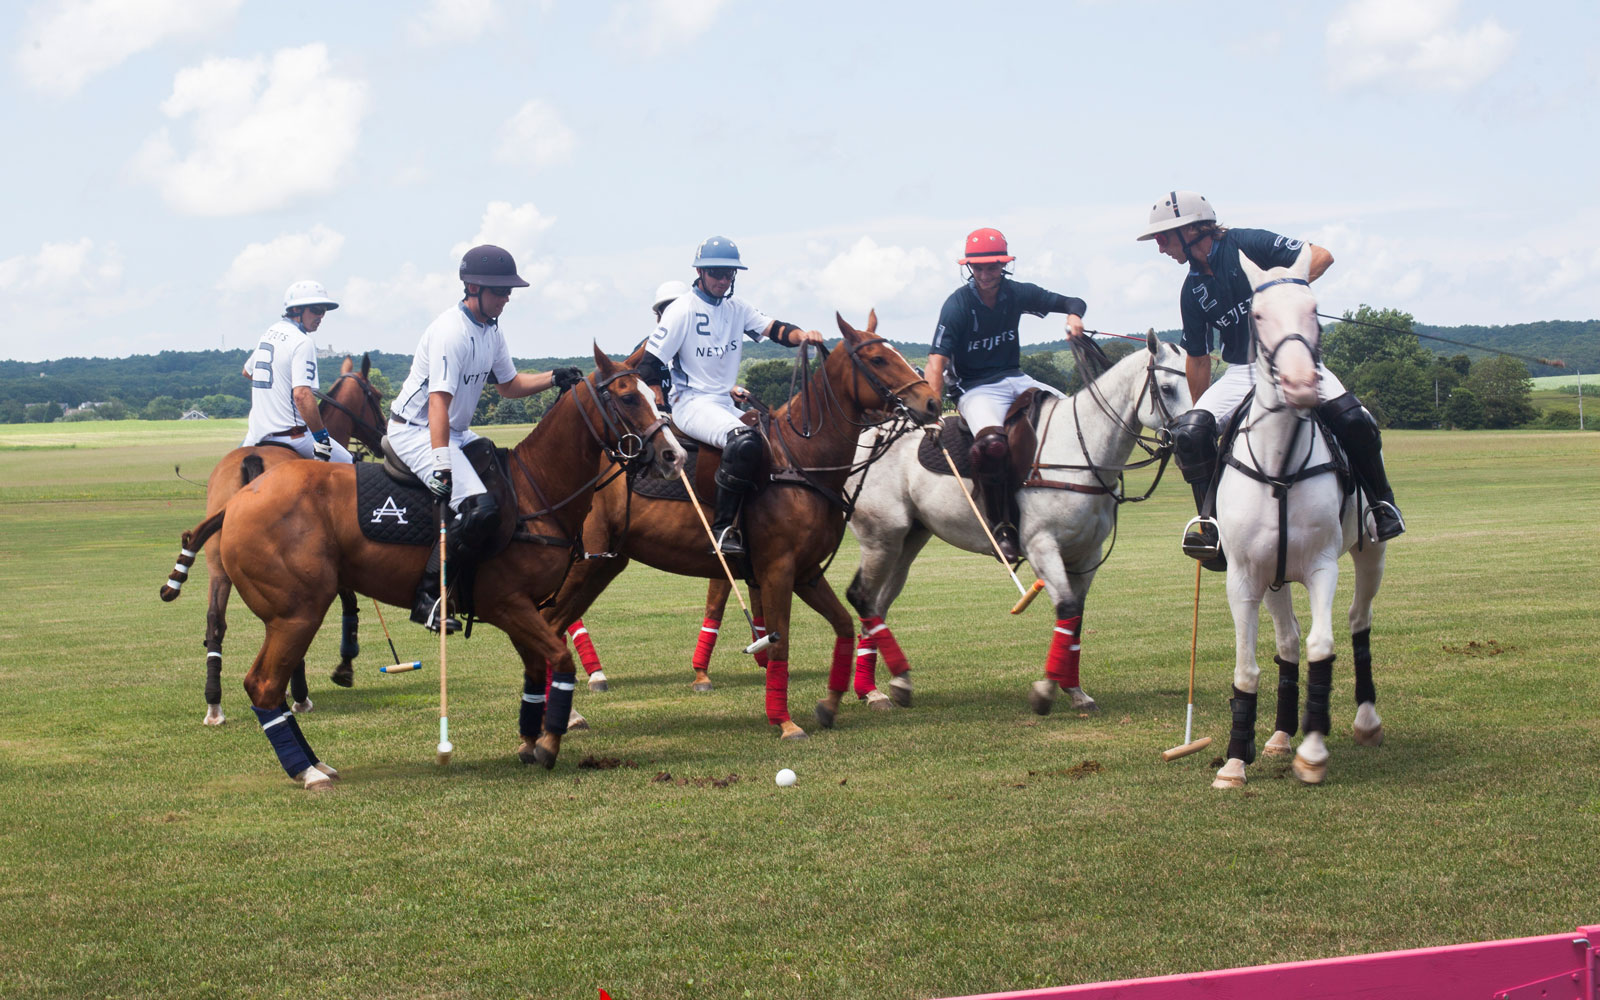 NetJets polo match